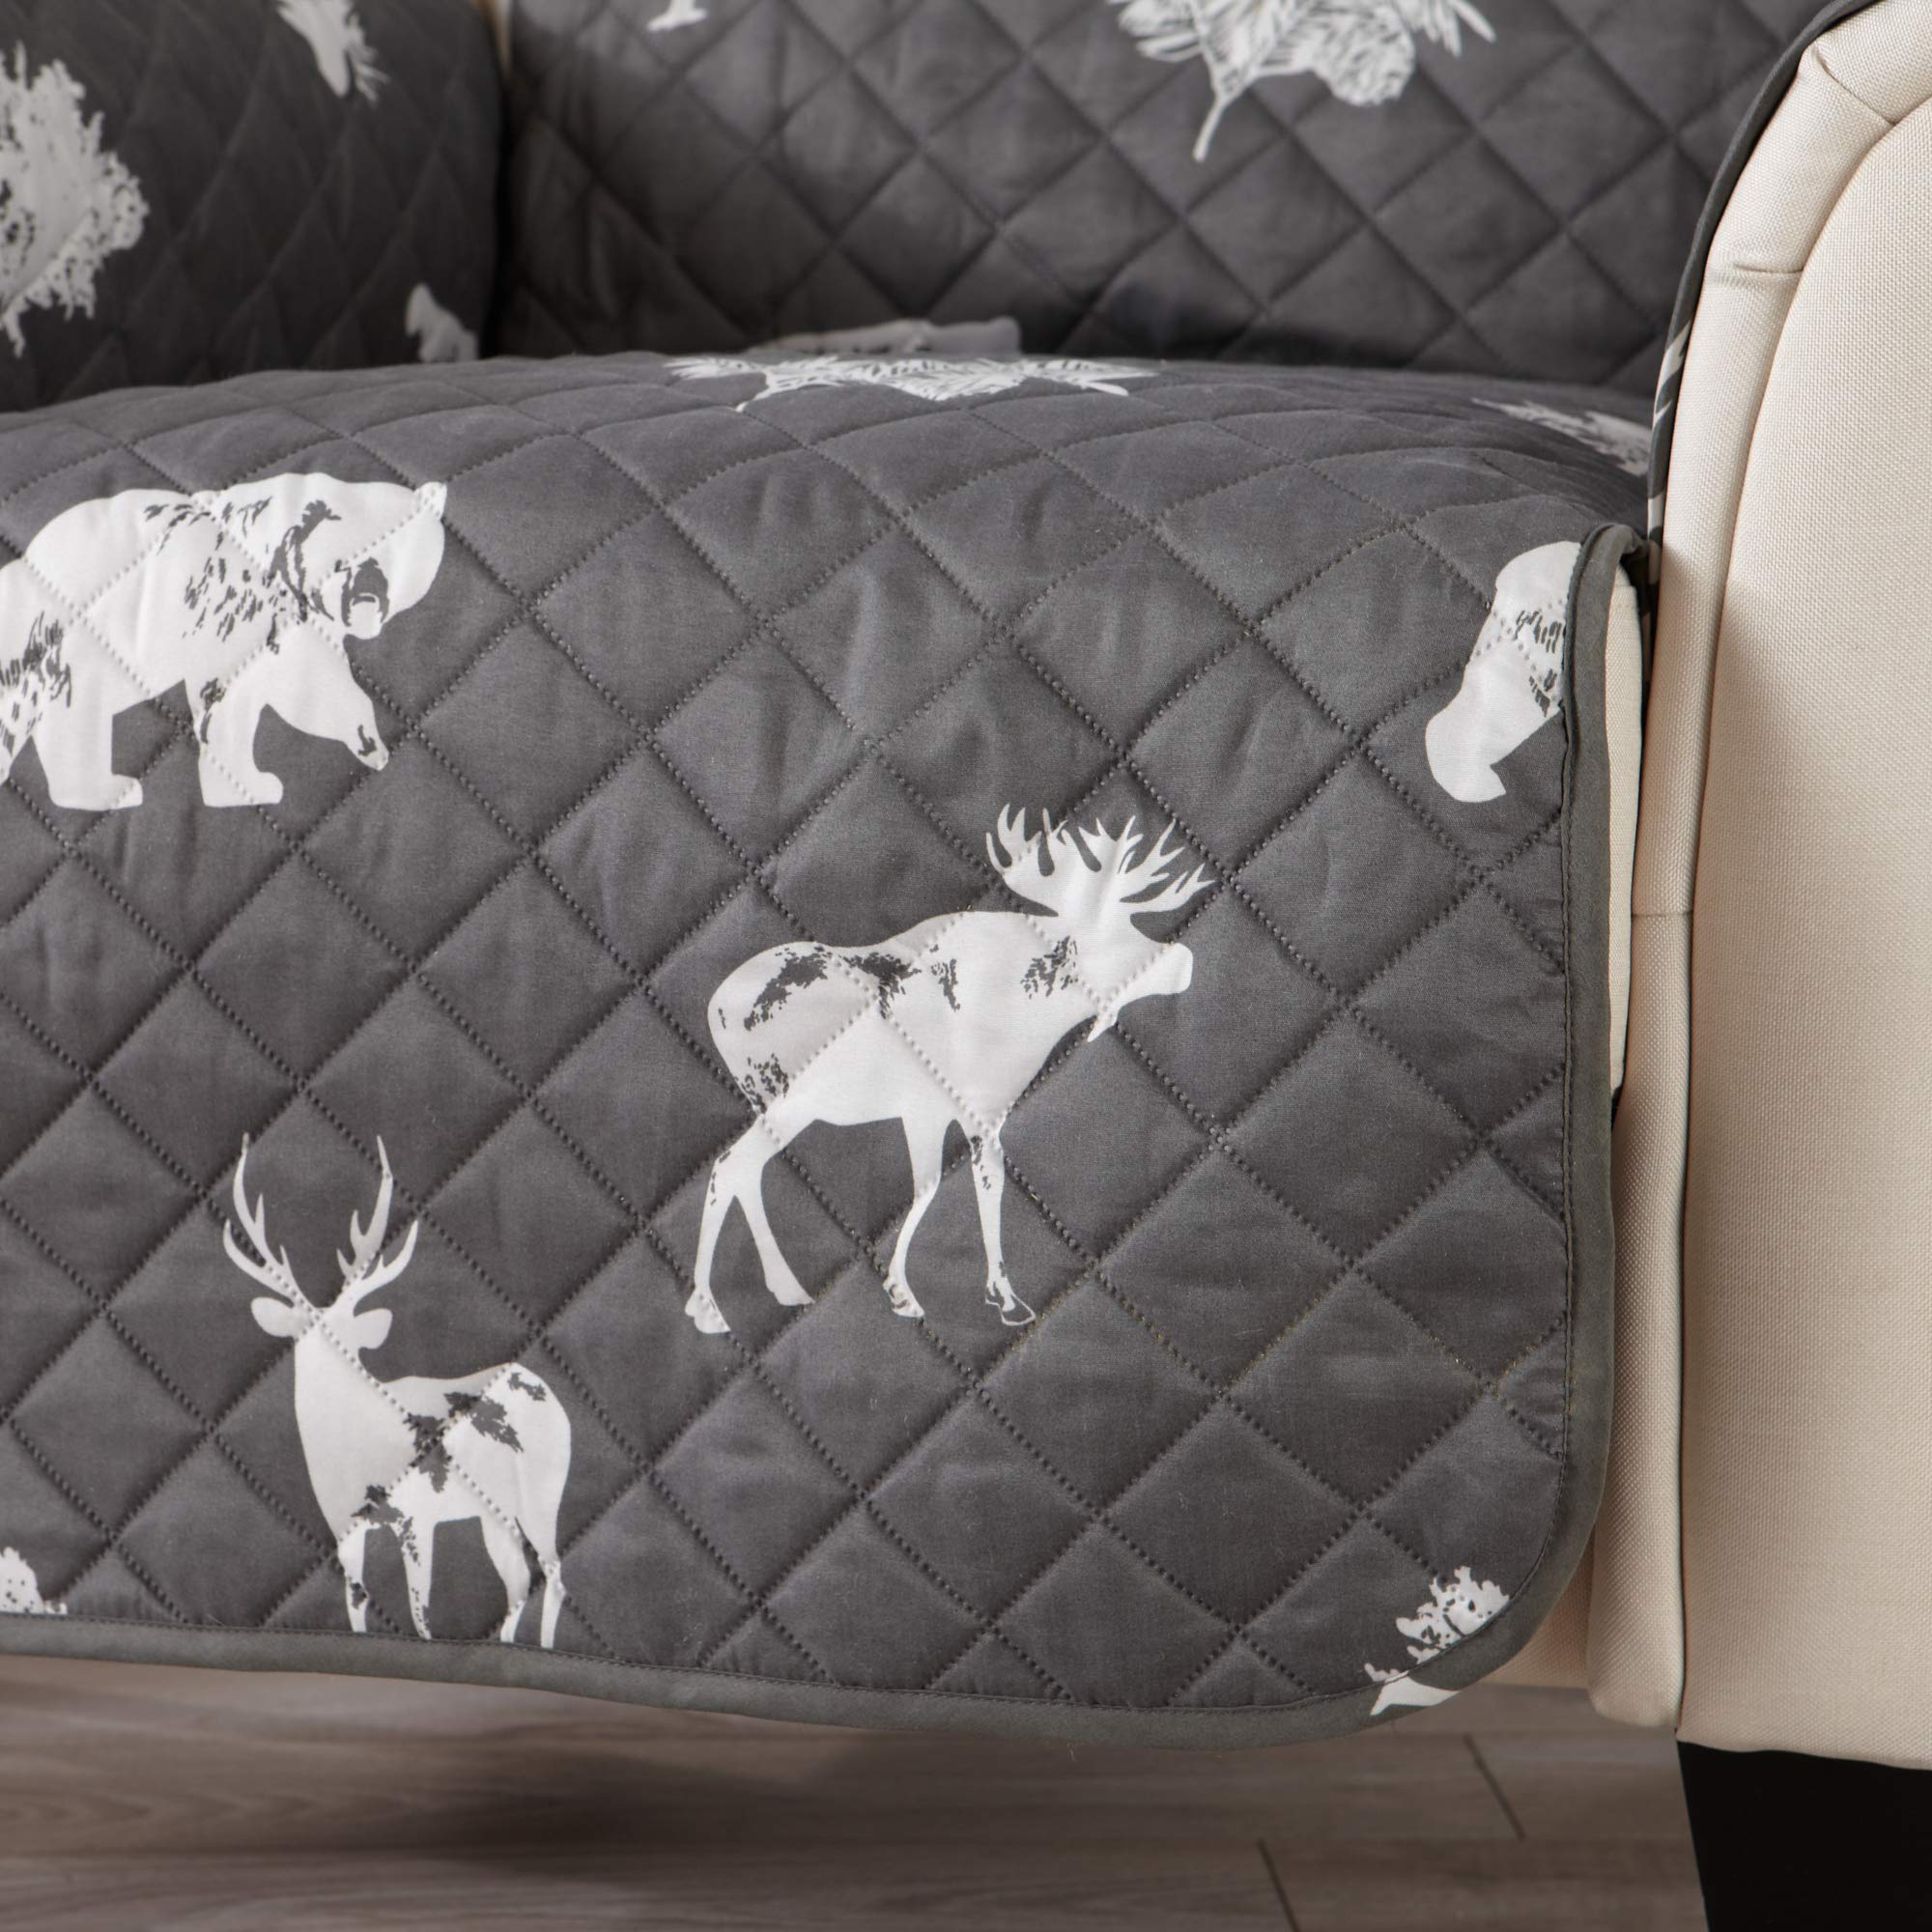 Sofa Saver Lodge Reversible Stain Resistant Printed Furniture Protector. Perfect for Pets and Kids. Adjustable Elastic Straps Included. (Chair, Forest Animals) by Sofa Saver (Image #4)